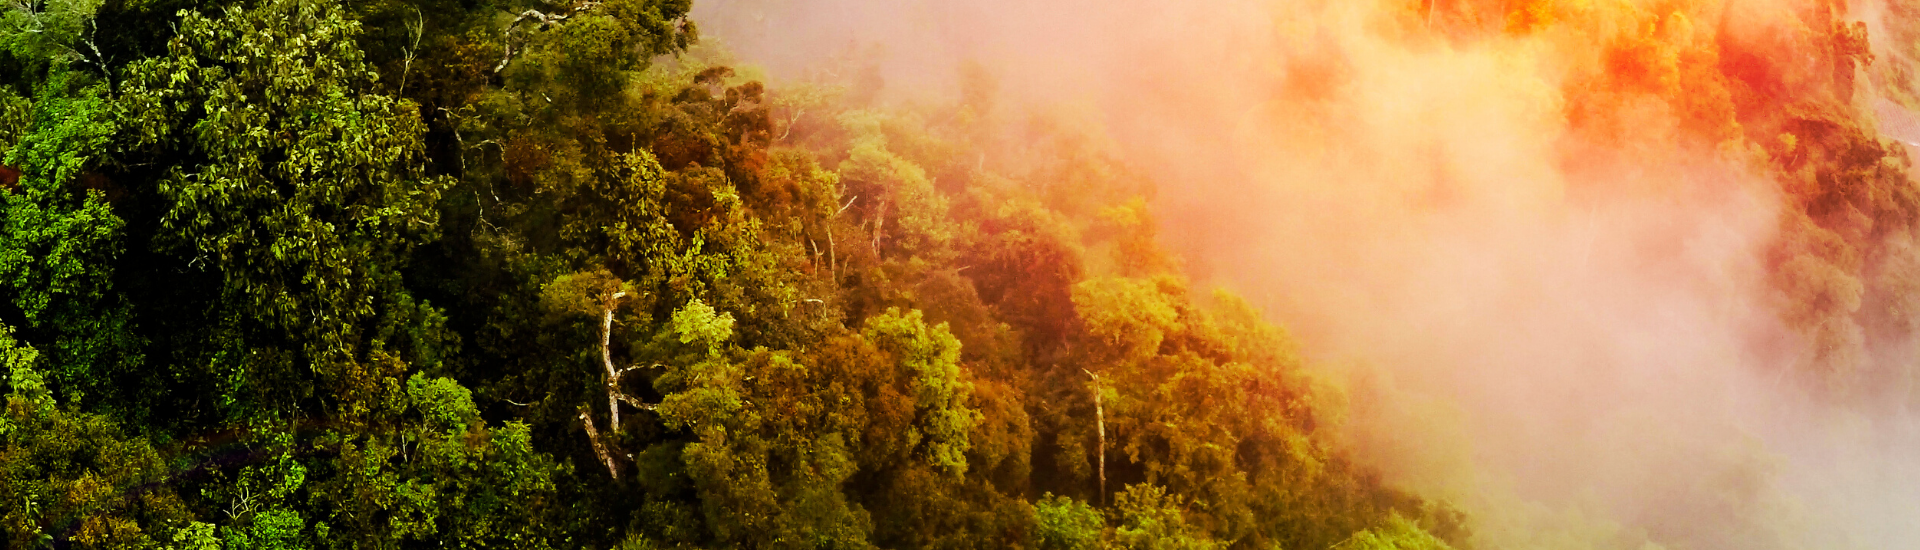 As deforestation escalates in the Amazon, Ceres releases major new investor framework to drive urgent corporate action